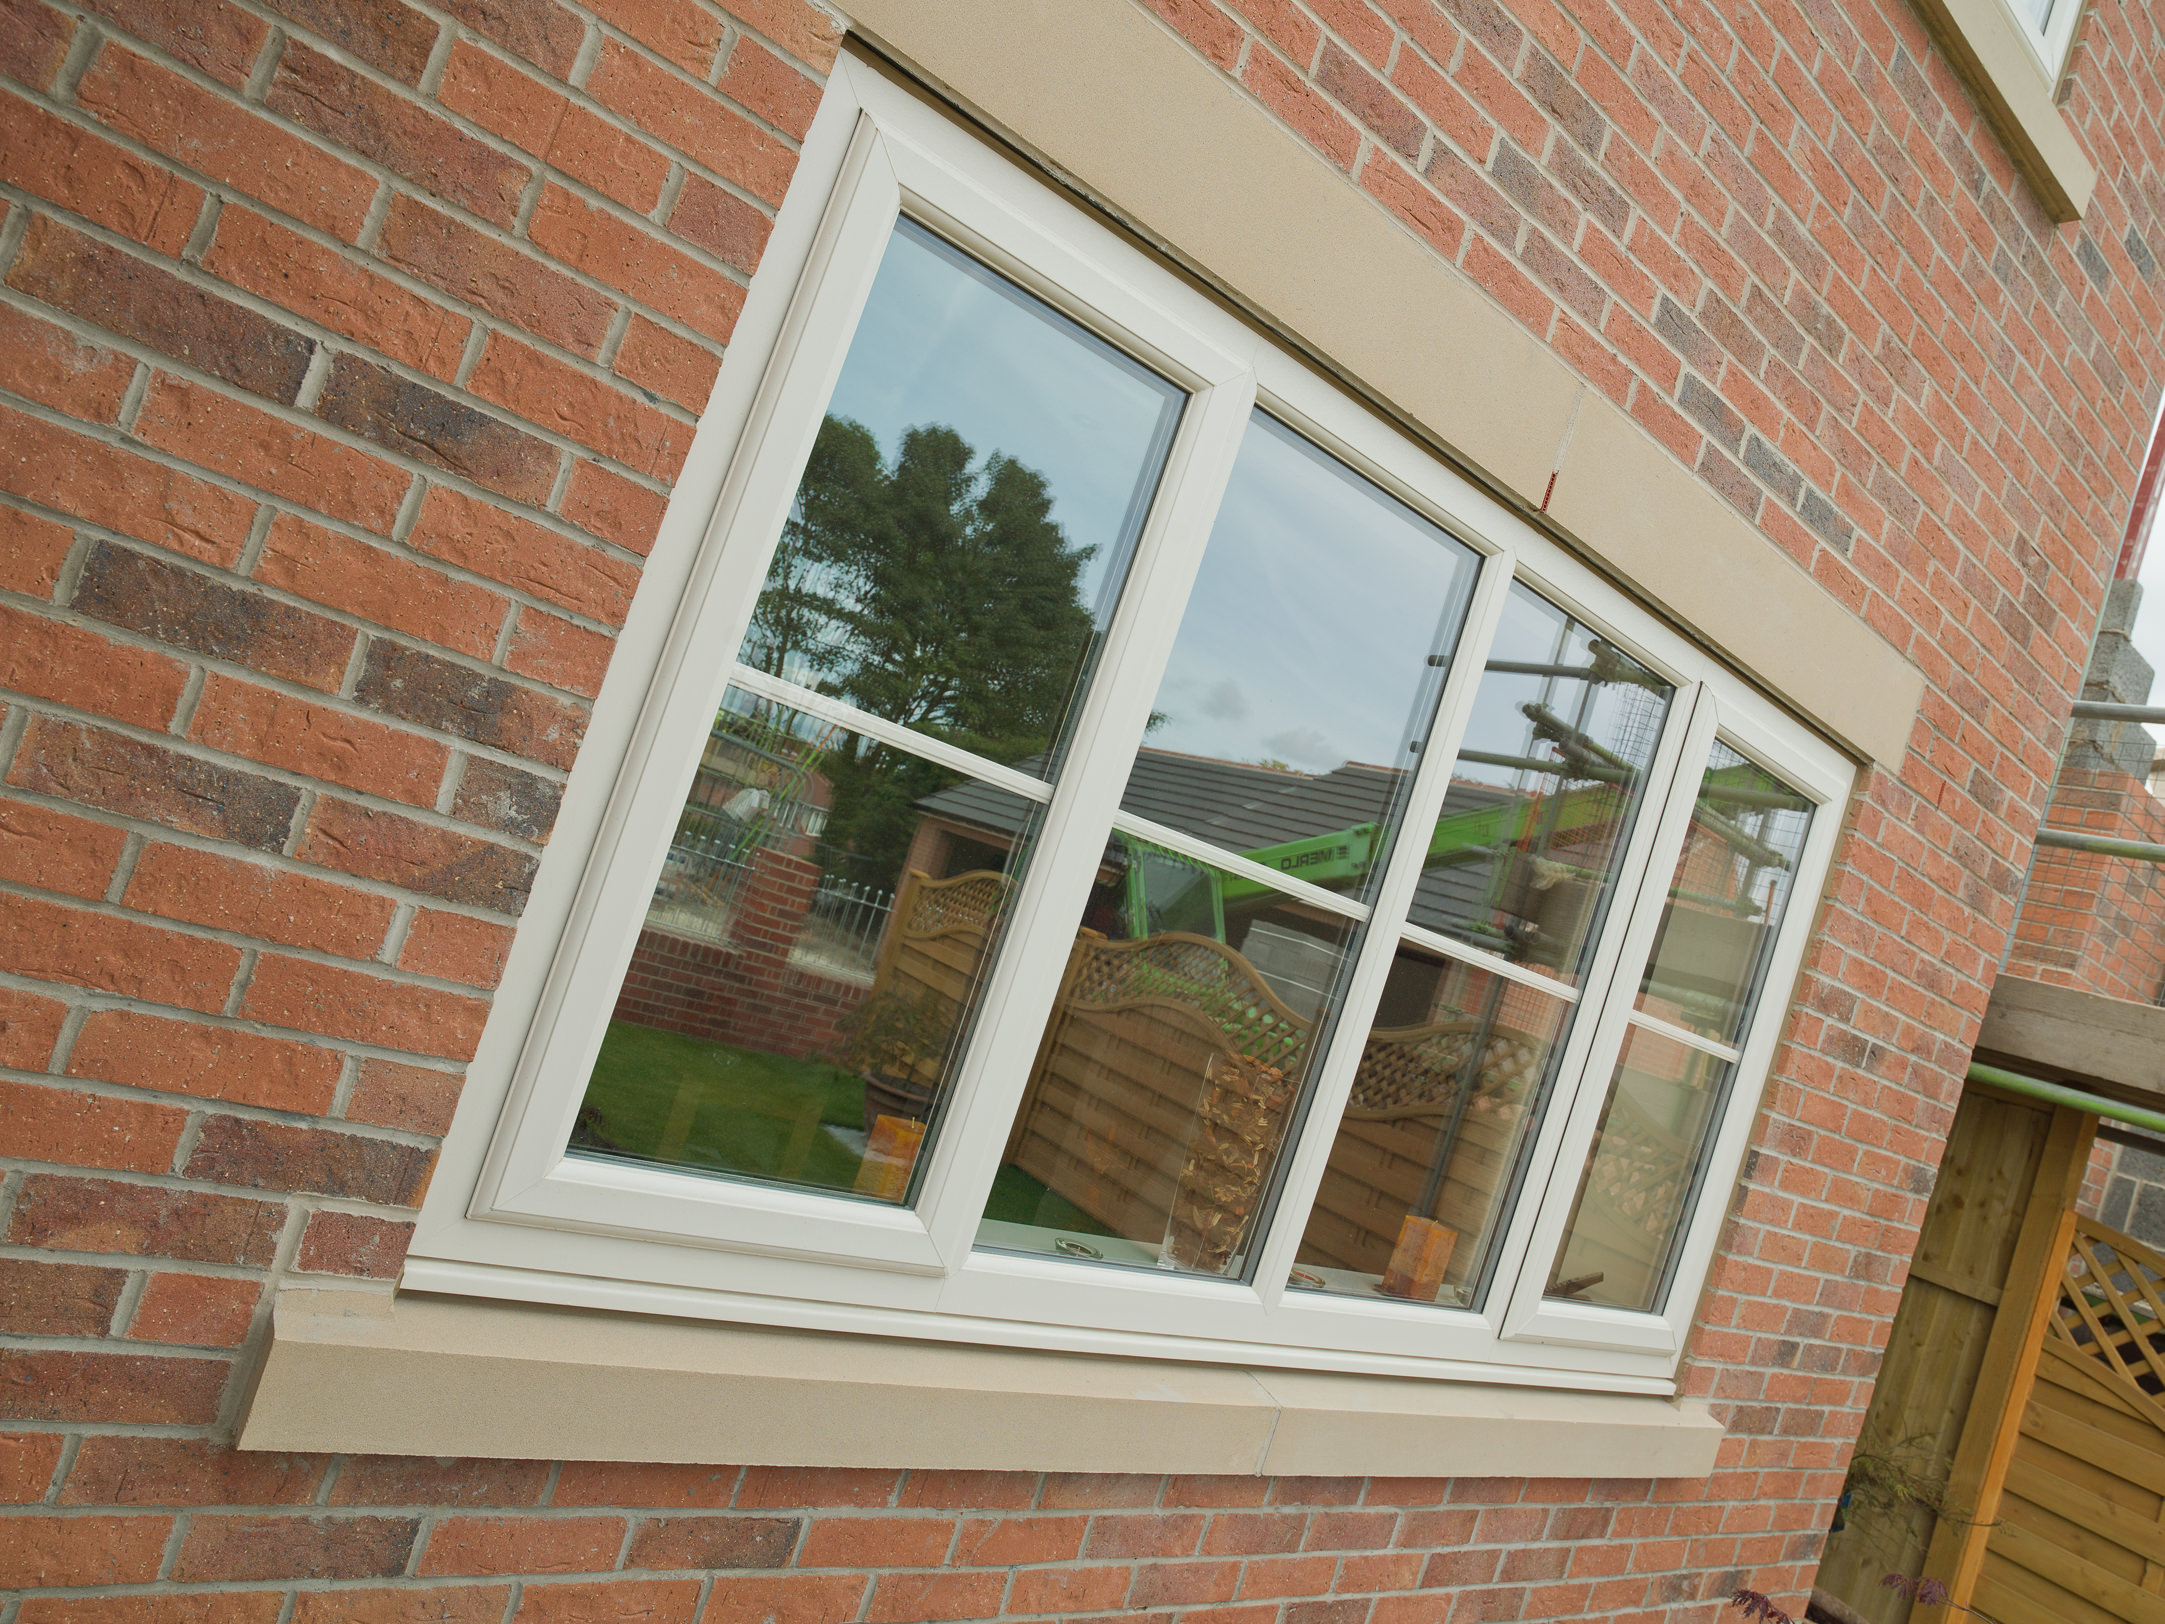 Upvc windows cambridge double glazed windows for Upvc windows